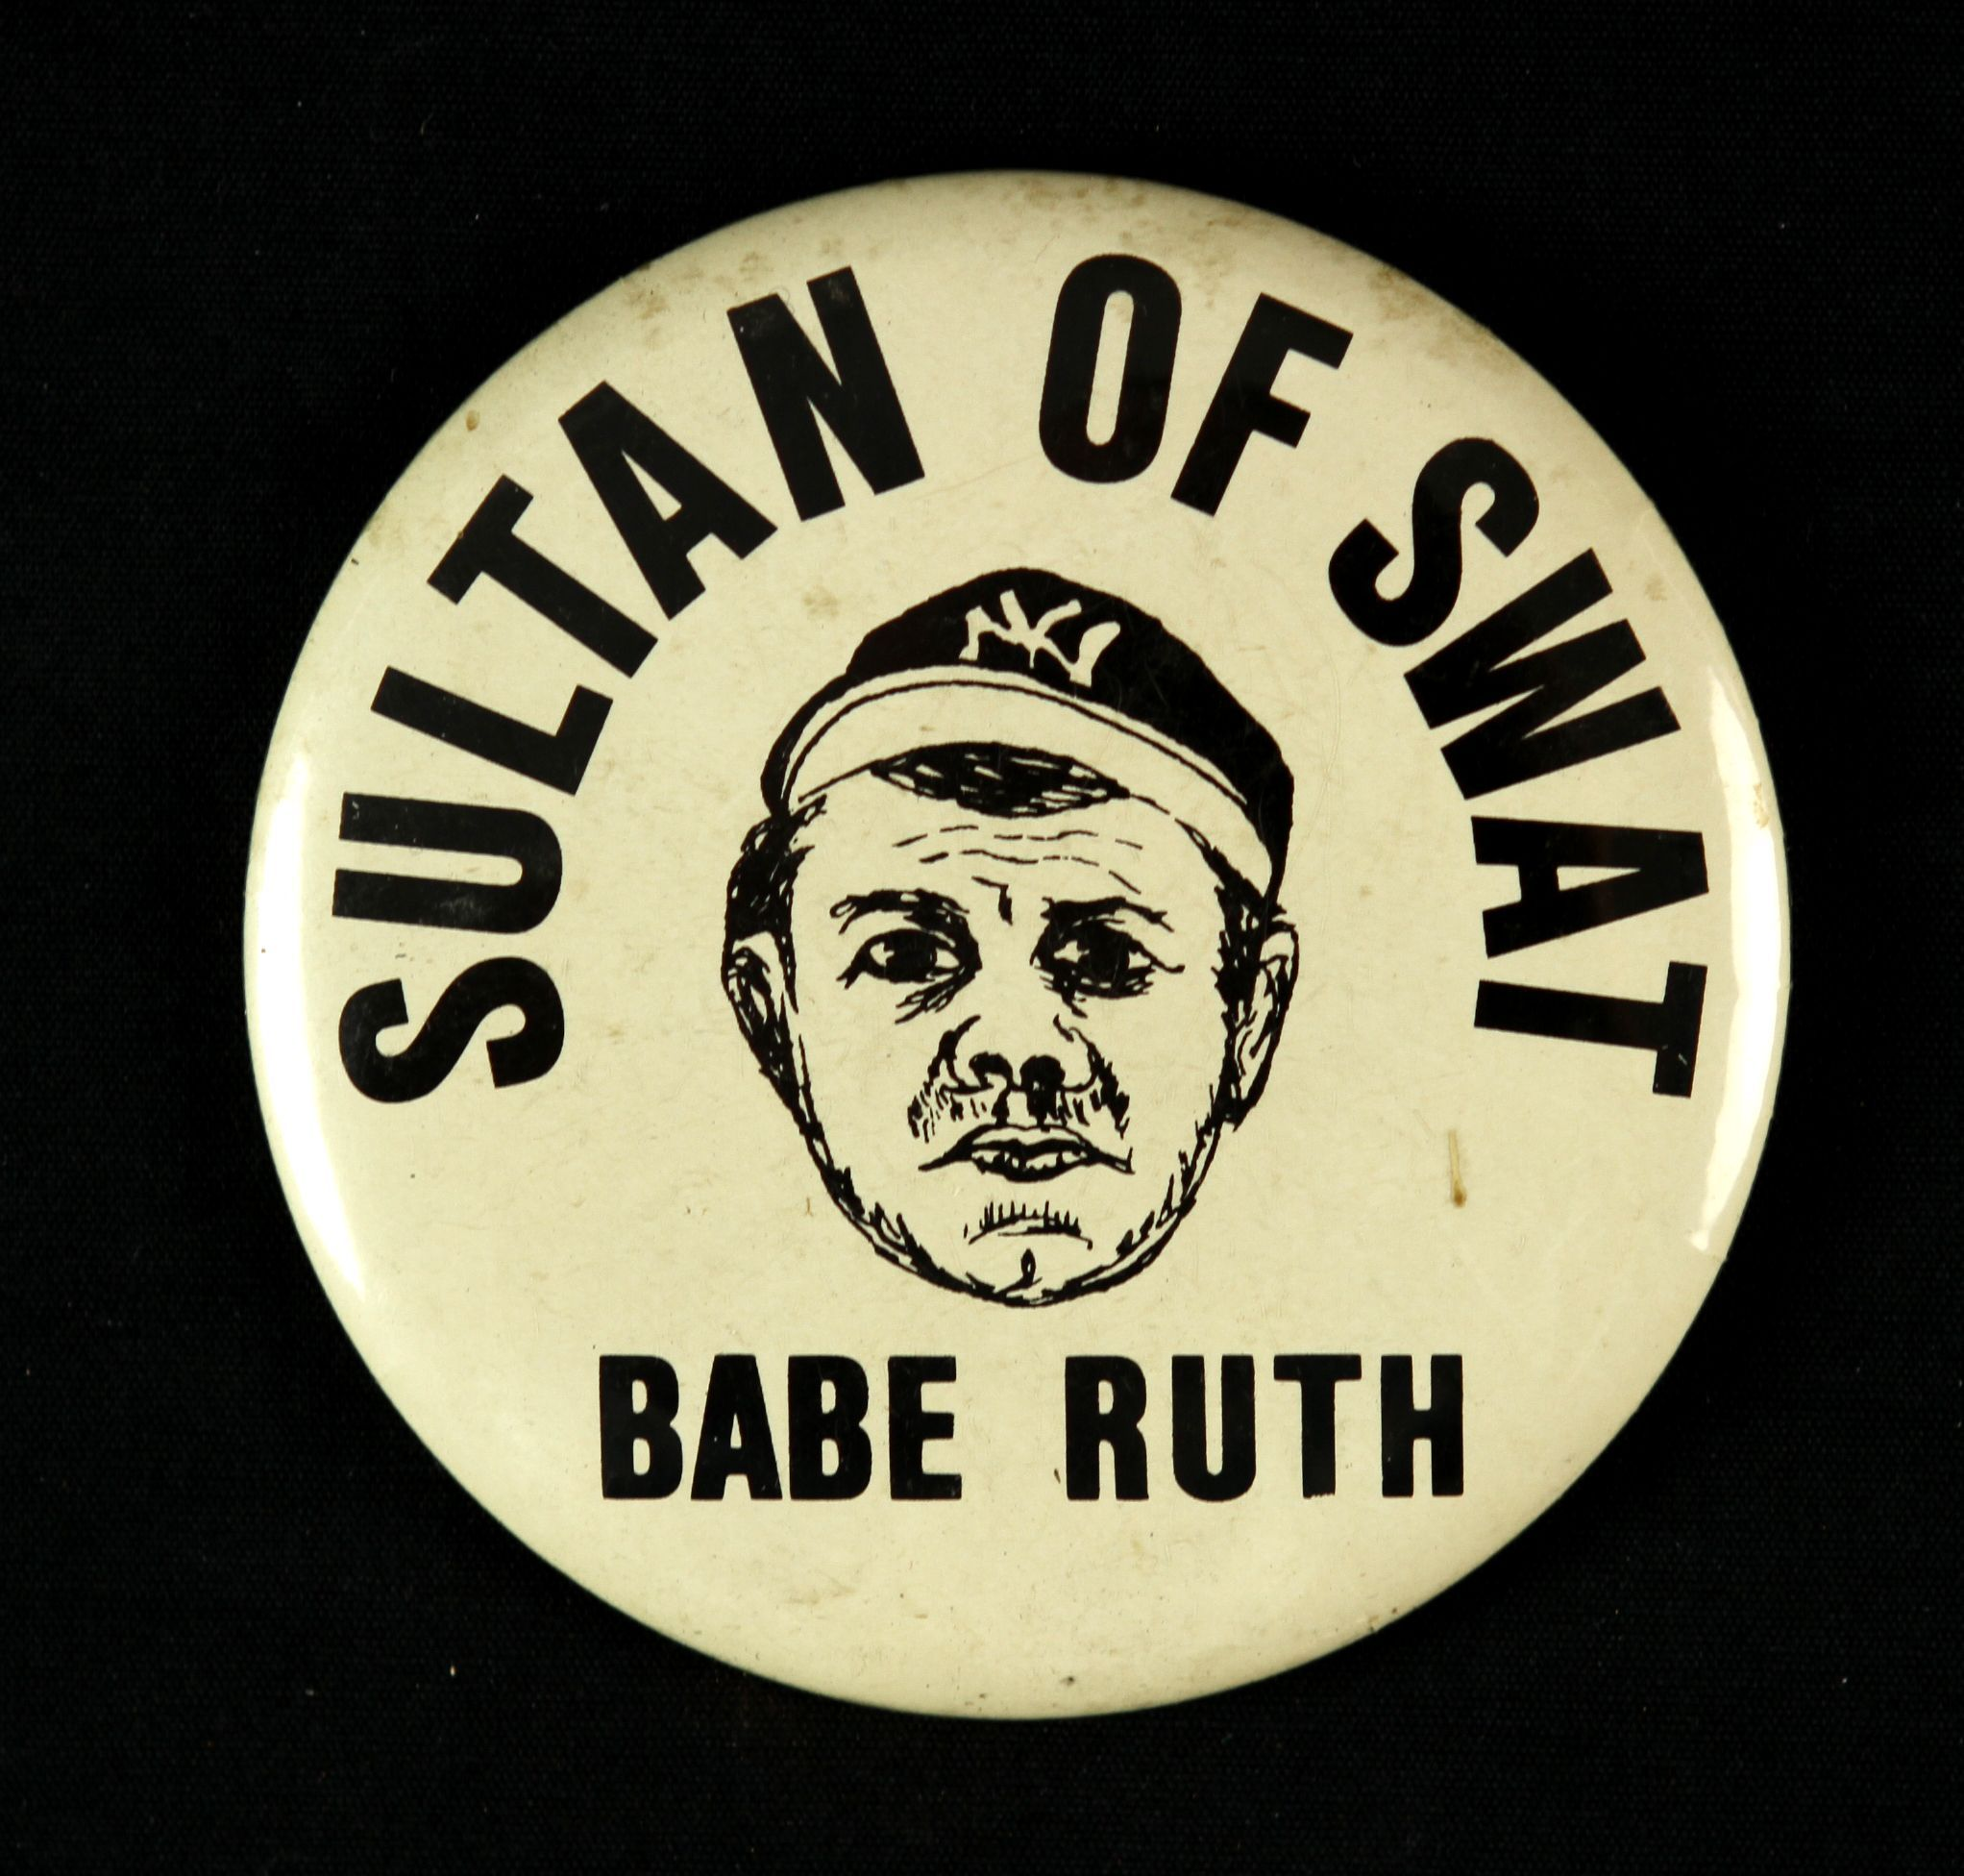 1950\'s Yankees pin | Baseball | Pinterest | Baseball stuff and Babe ruth